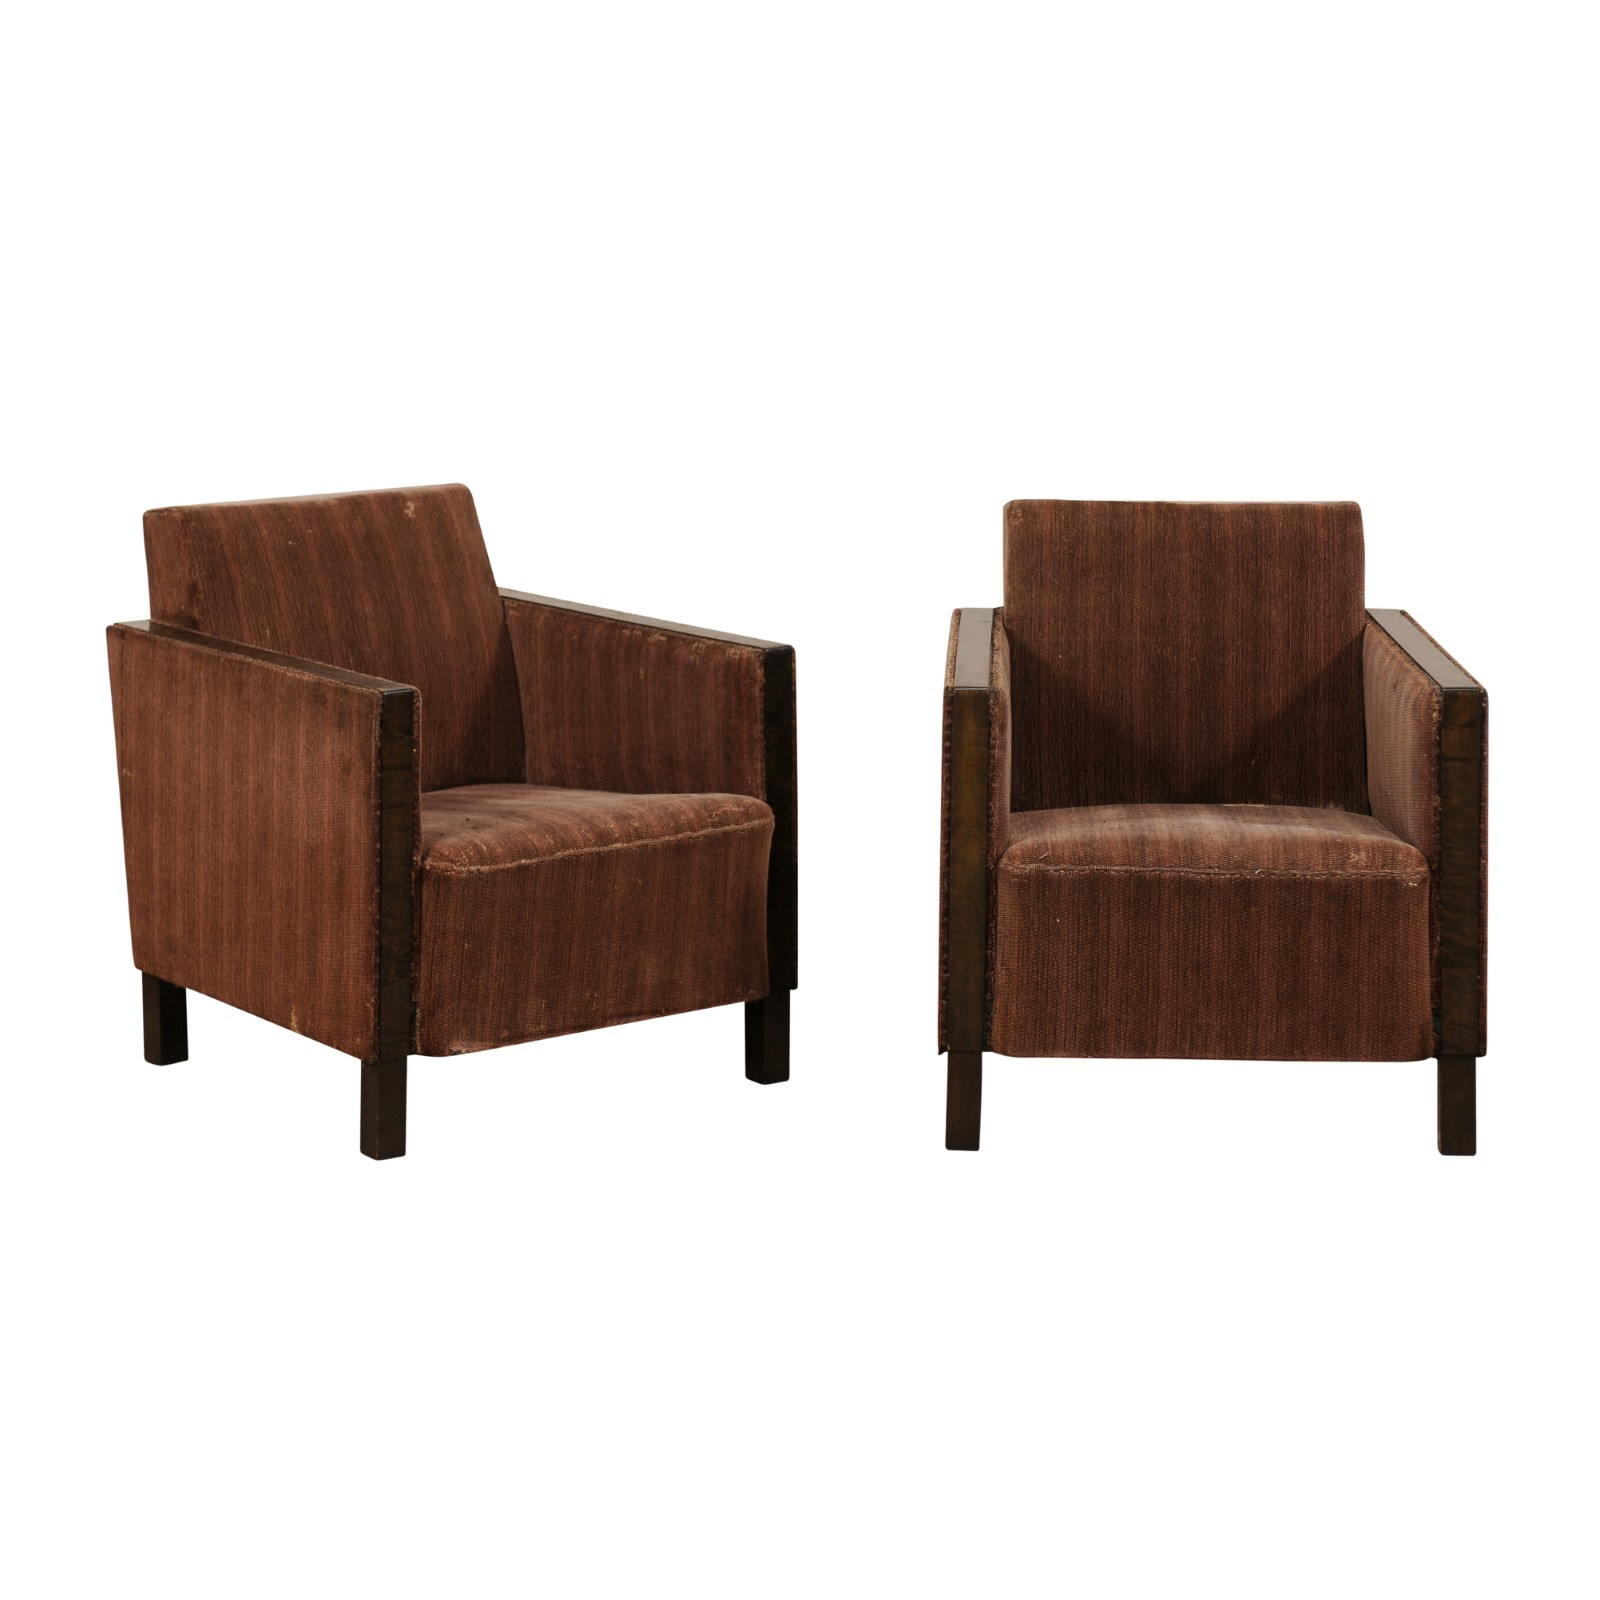 Swedish Mid Century Furniture Pair Swedish Mid Century Club Chairs 171 A Tyner Antiques